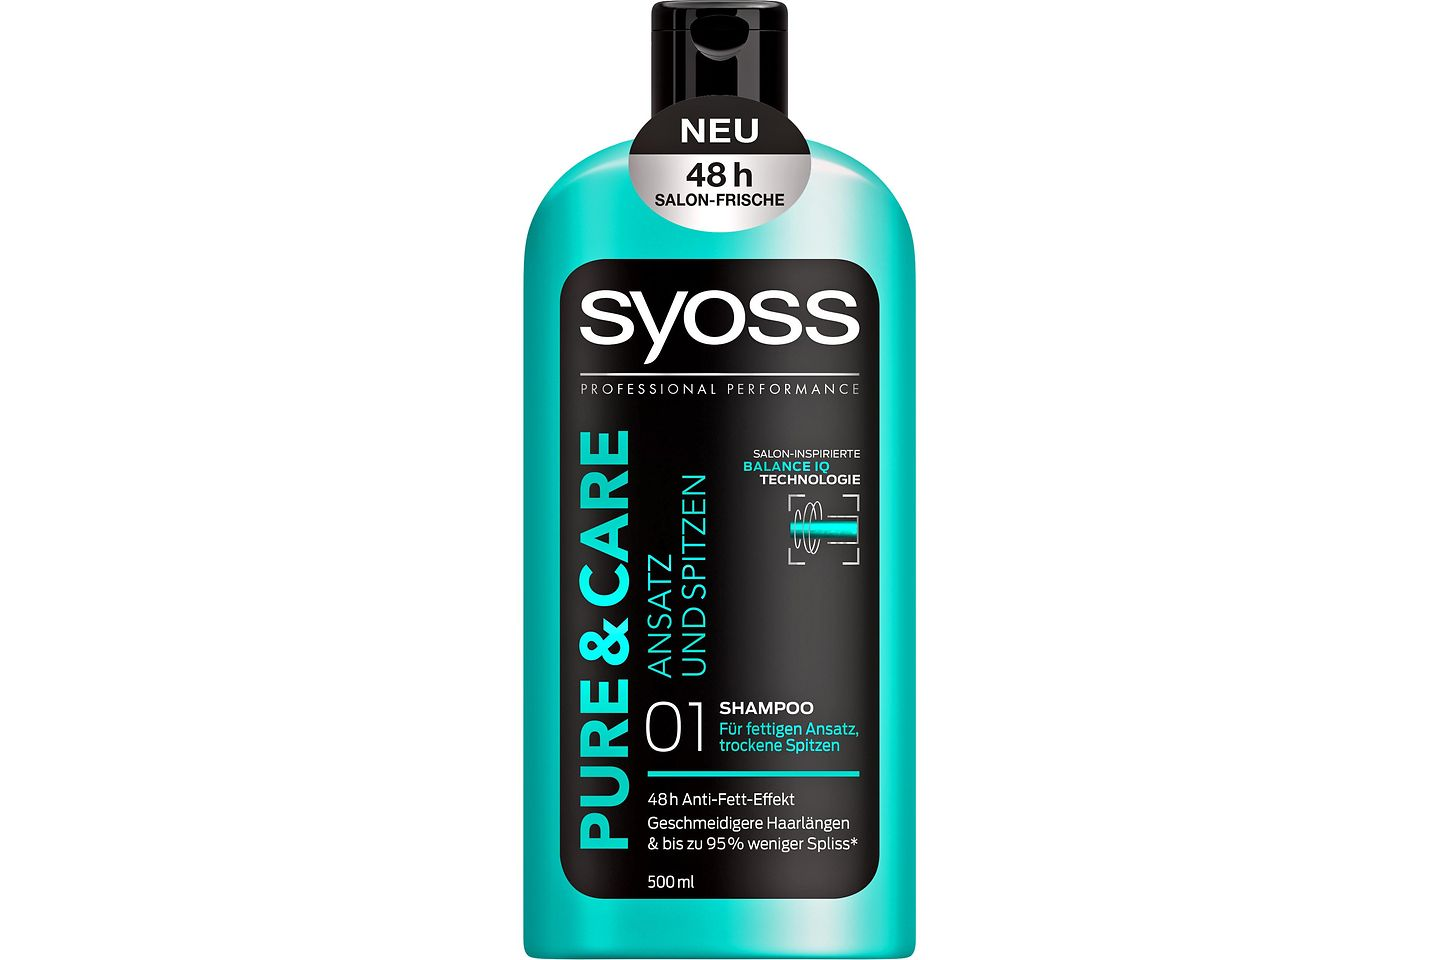 Syoss hair care